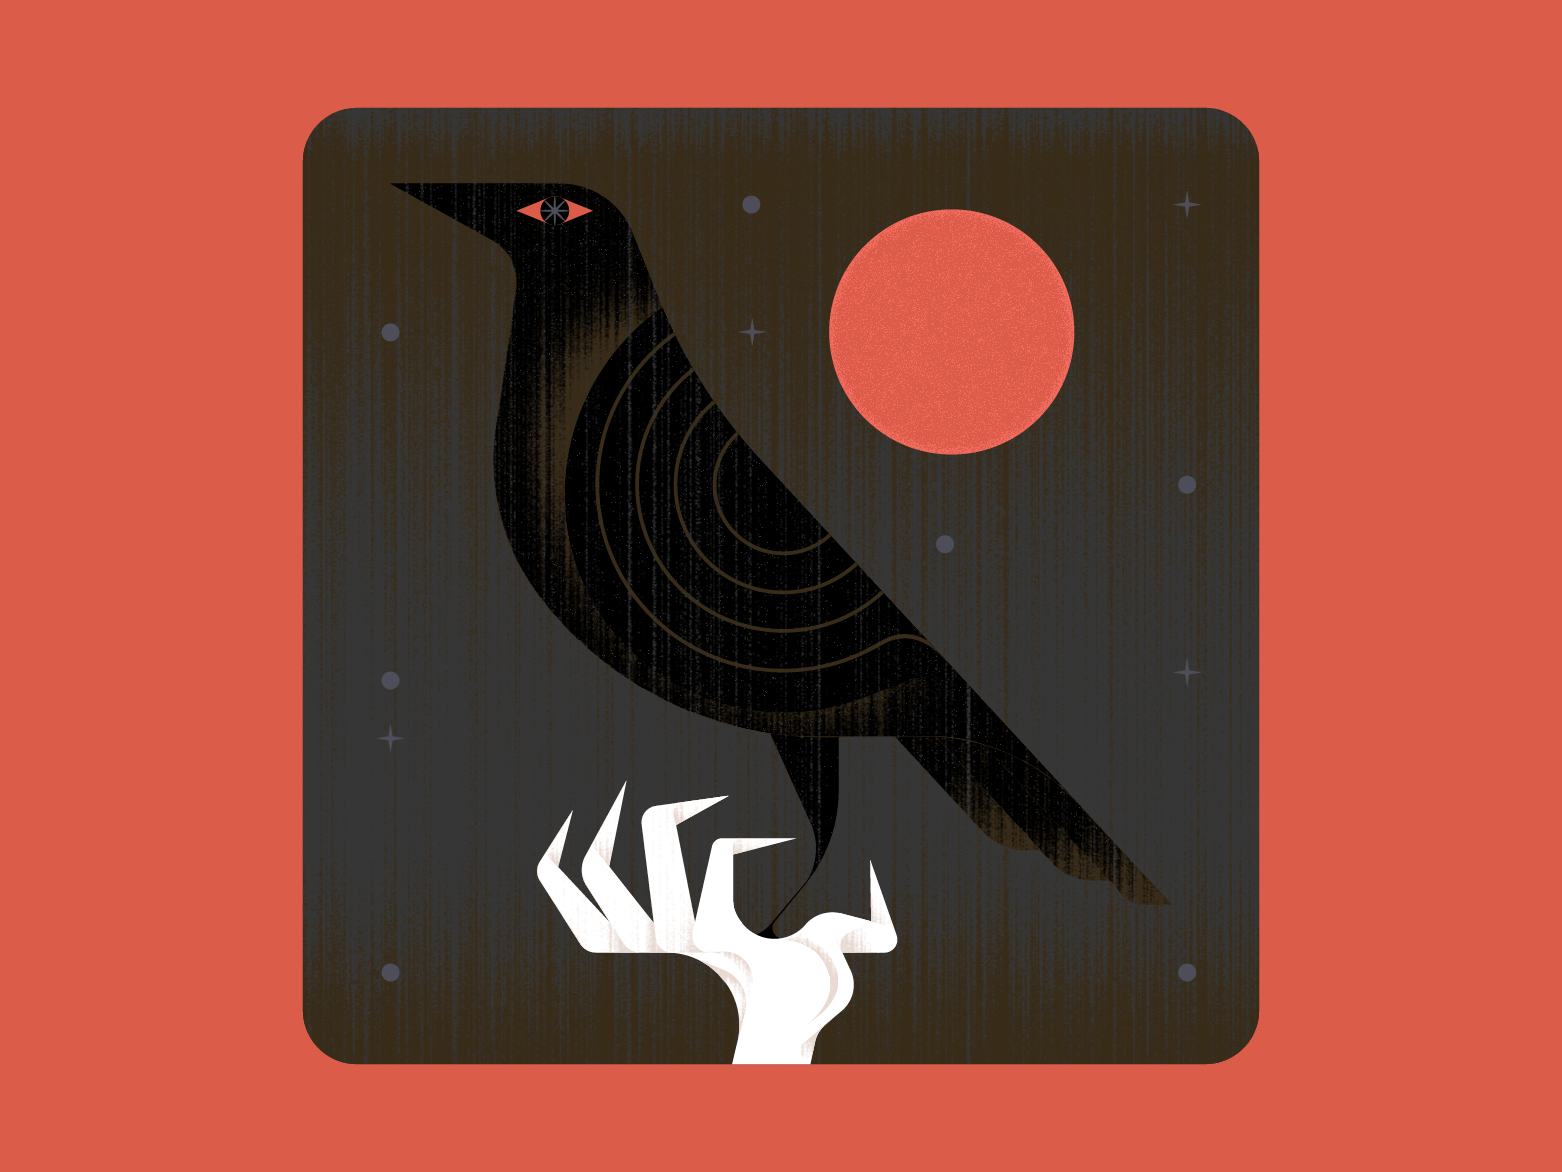 𝖘𝖕𝖎𝖈𝖊 crow game of thrones design vector illustration